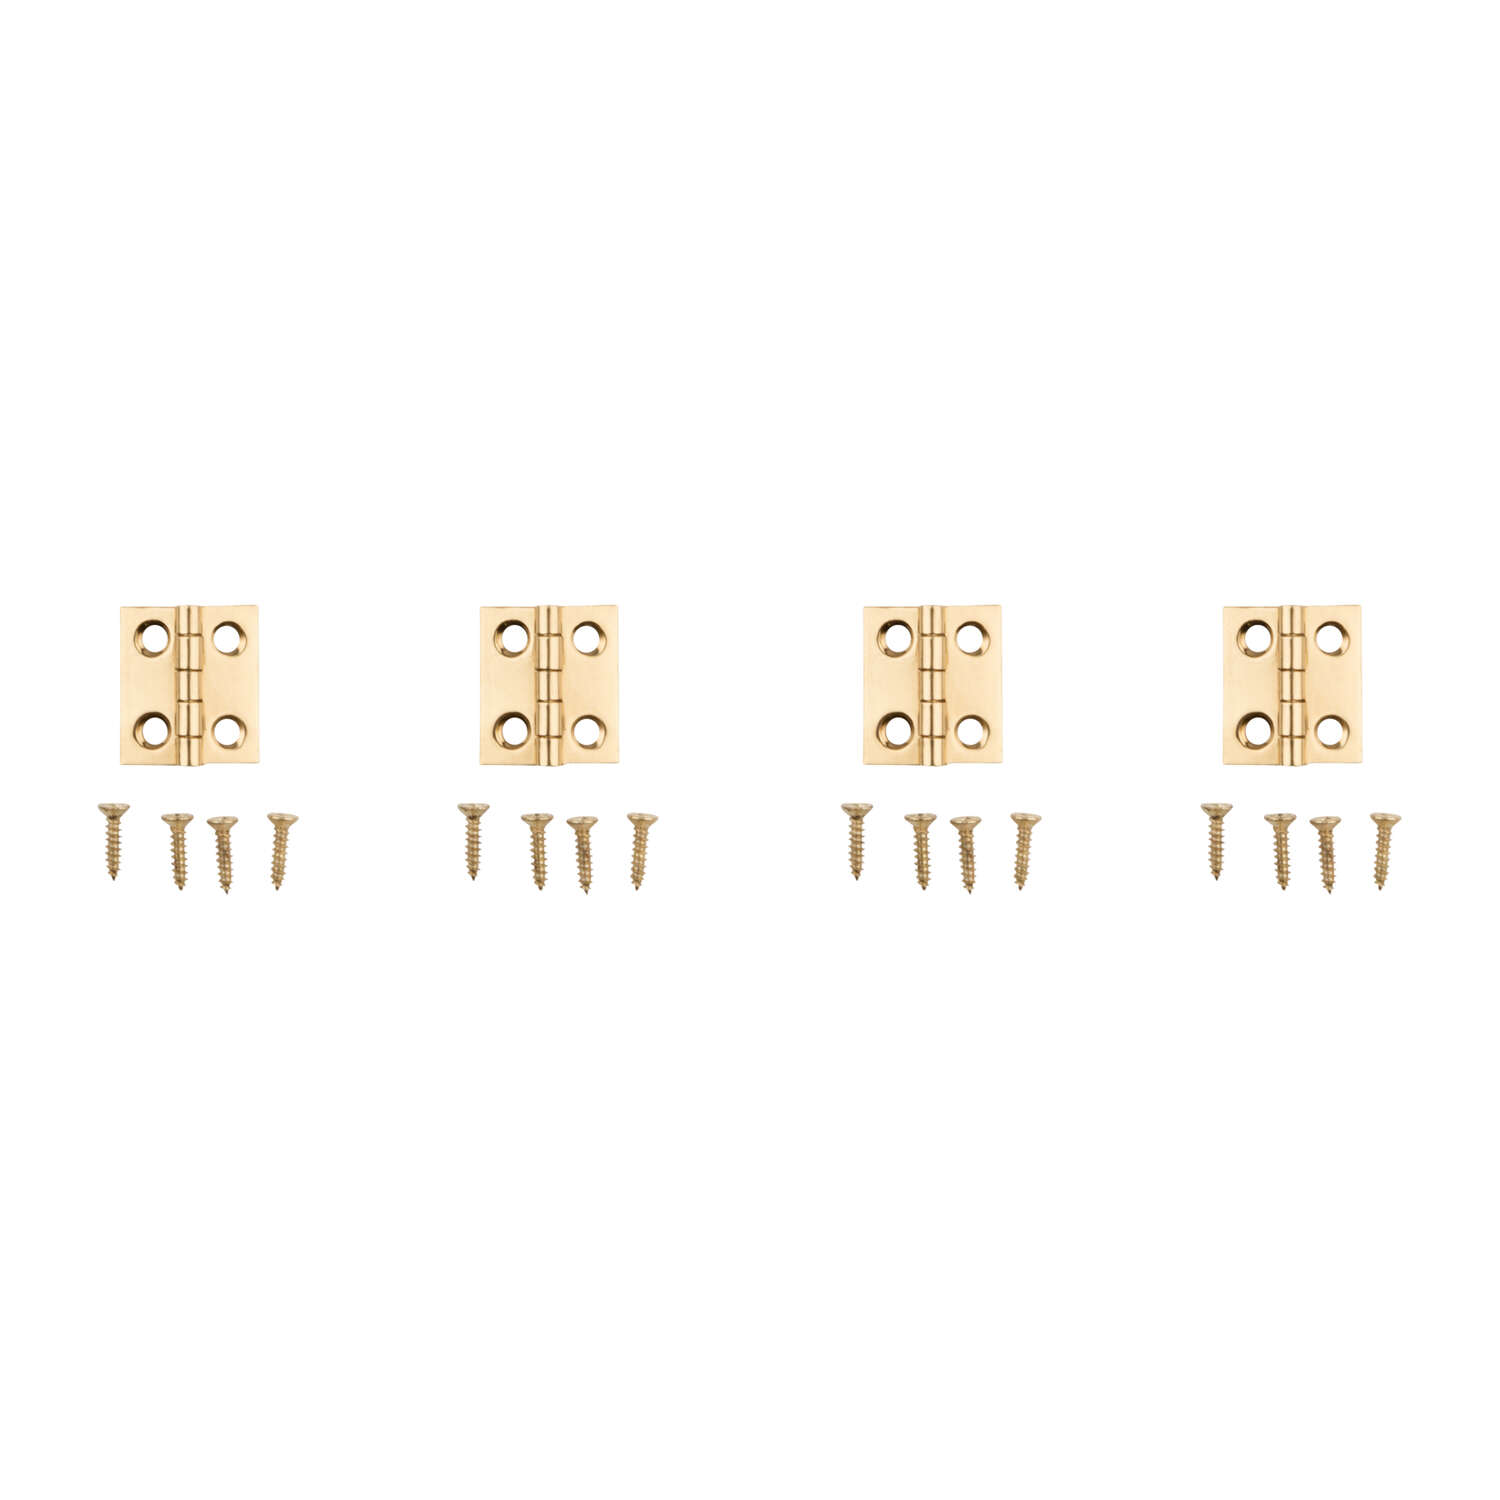 National Hardware 3/4 in. L Brass-Plated Door Hinge 4 pk